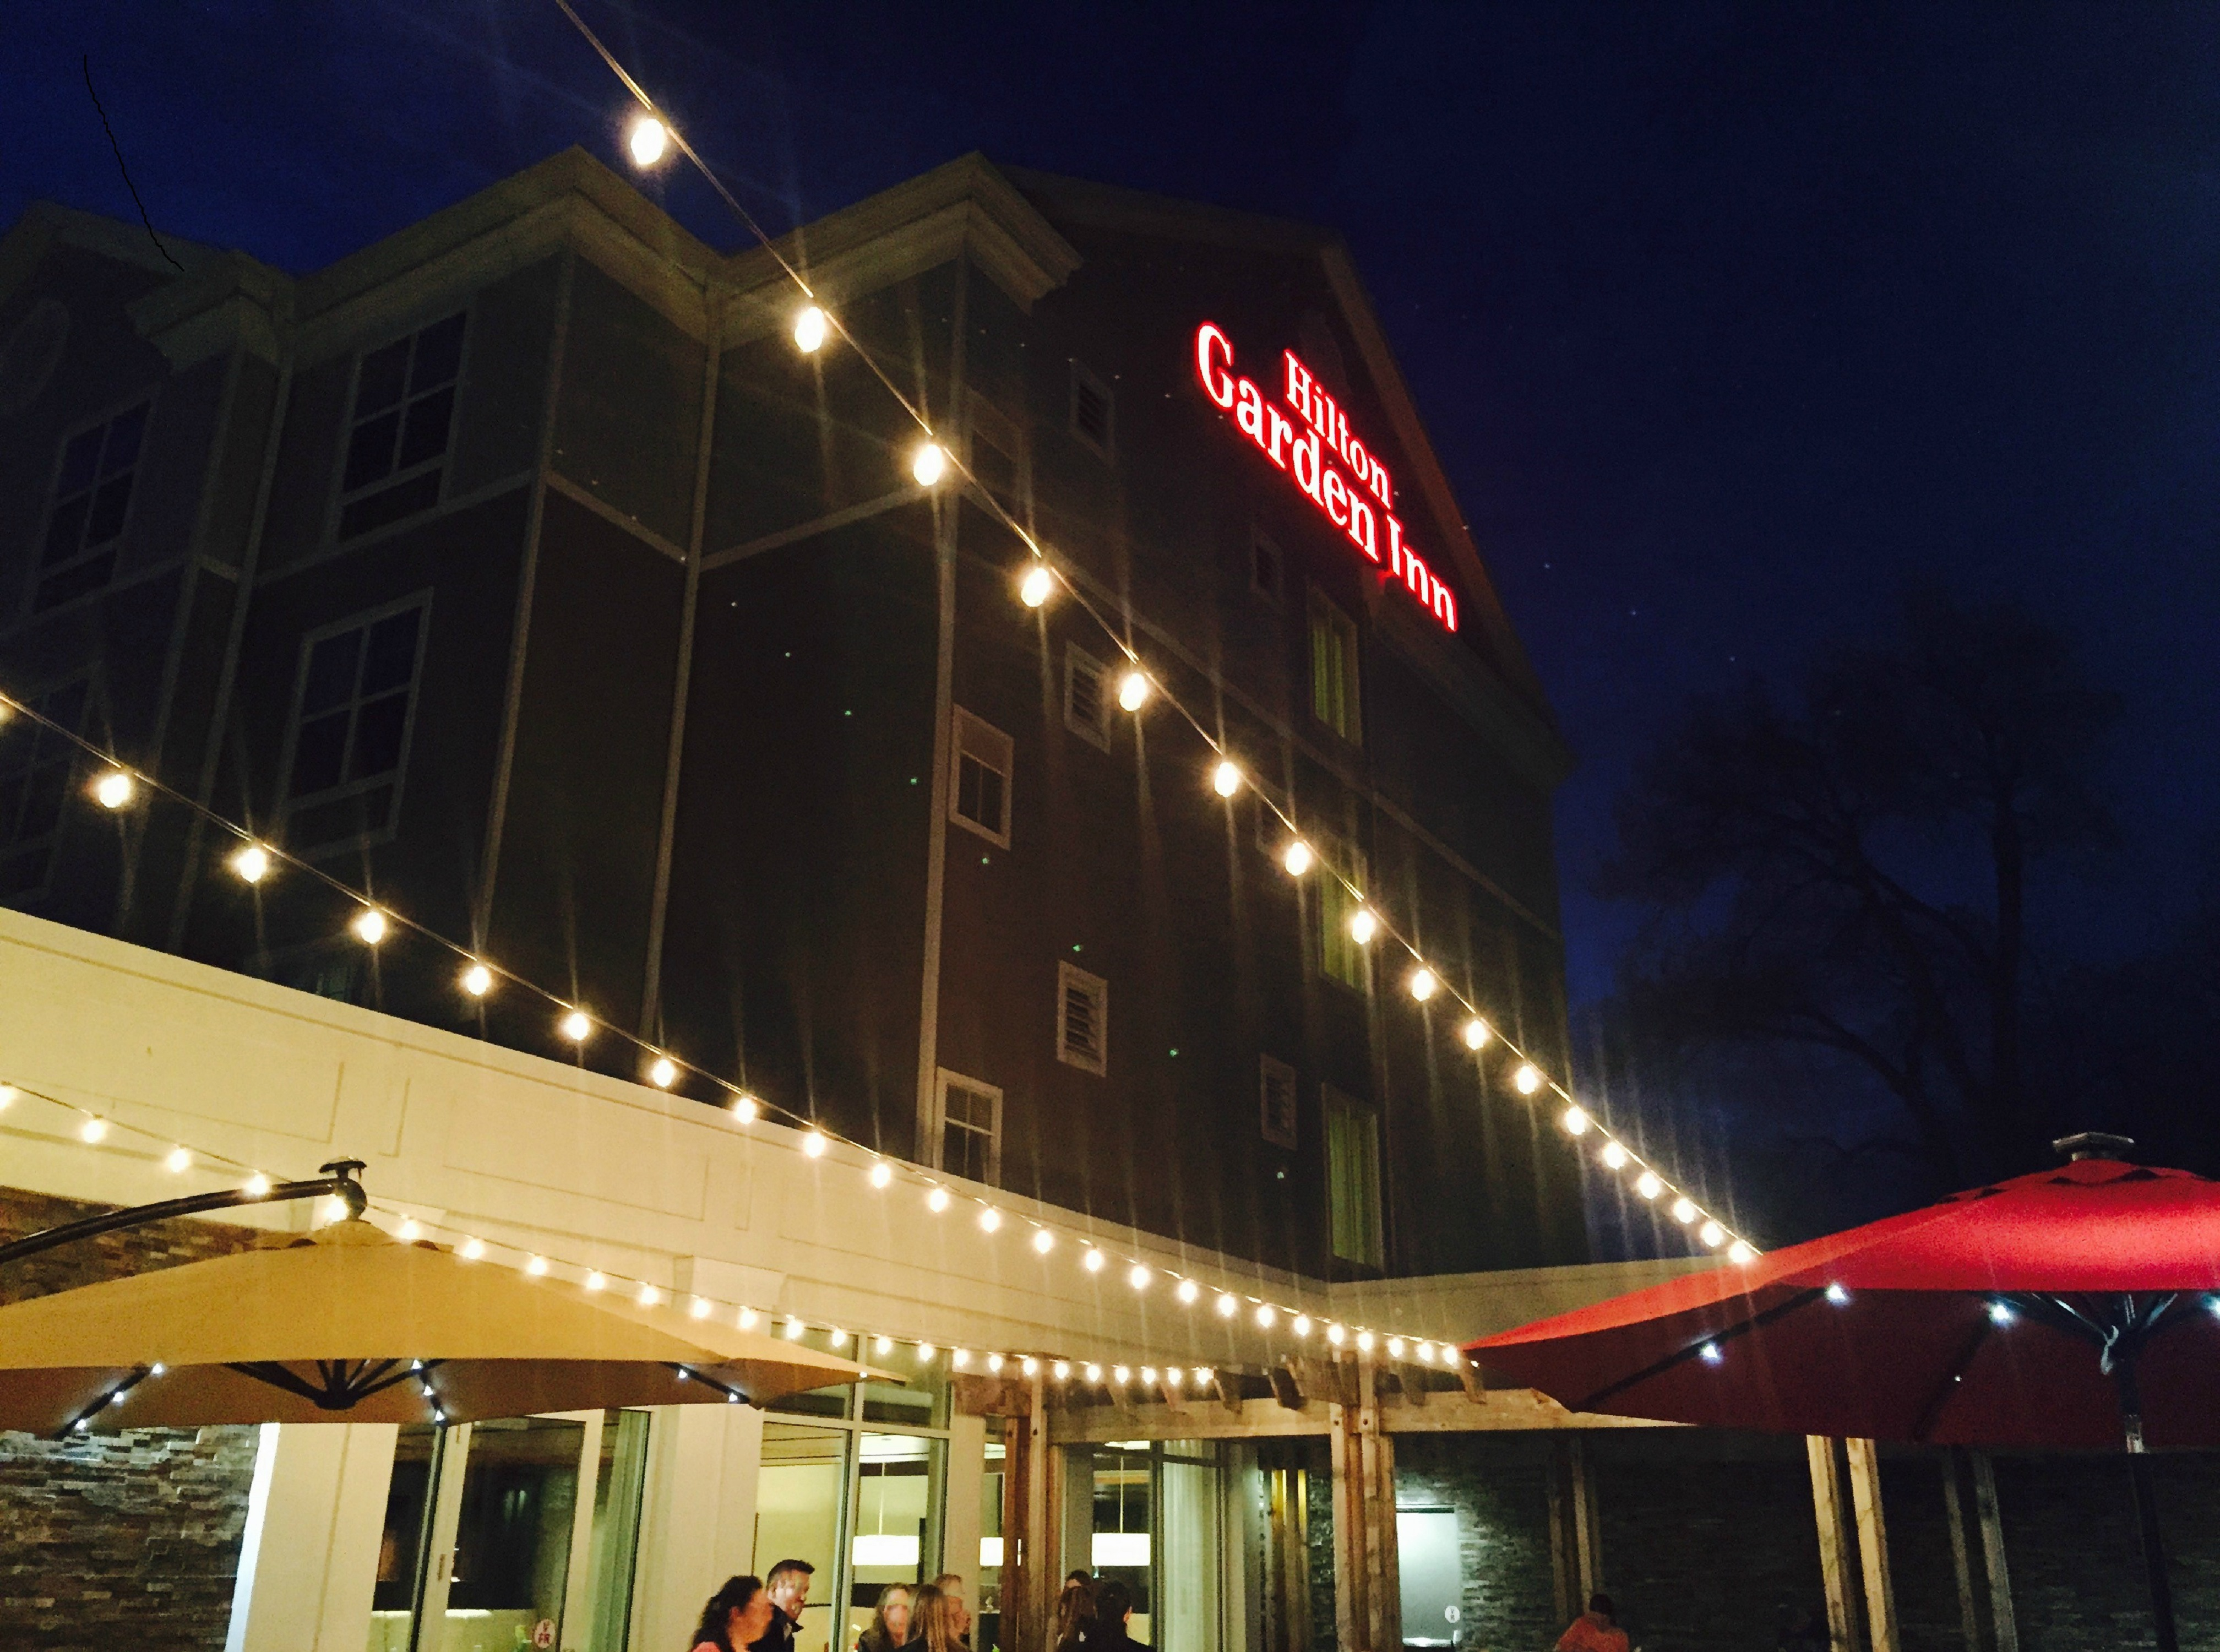 Outdoor Patio and Hotel Building Exterior at Night